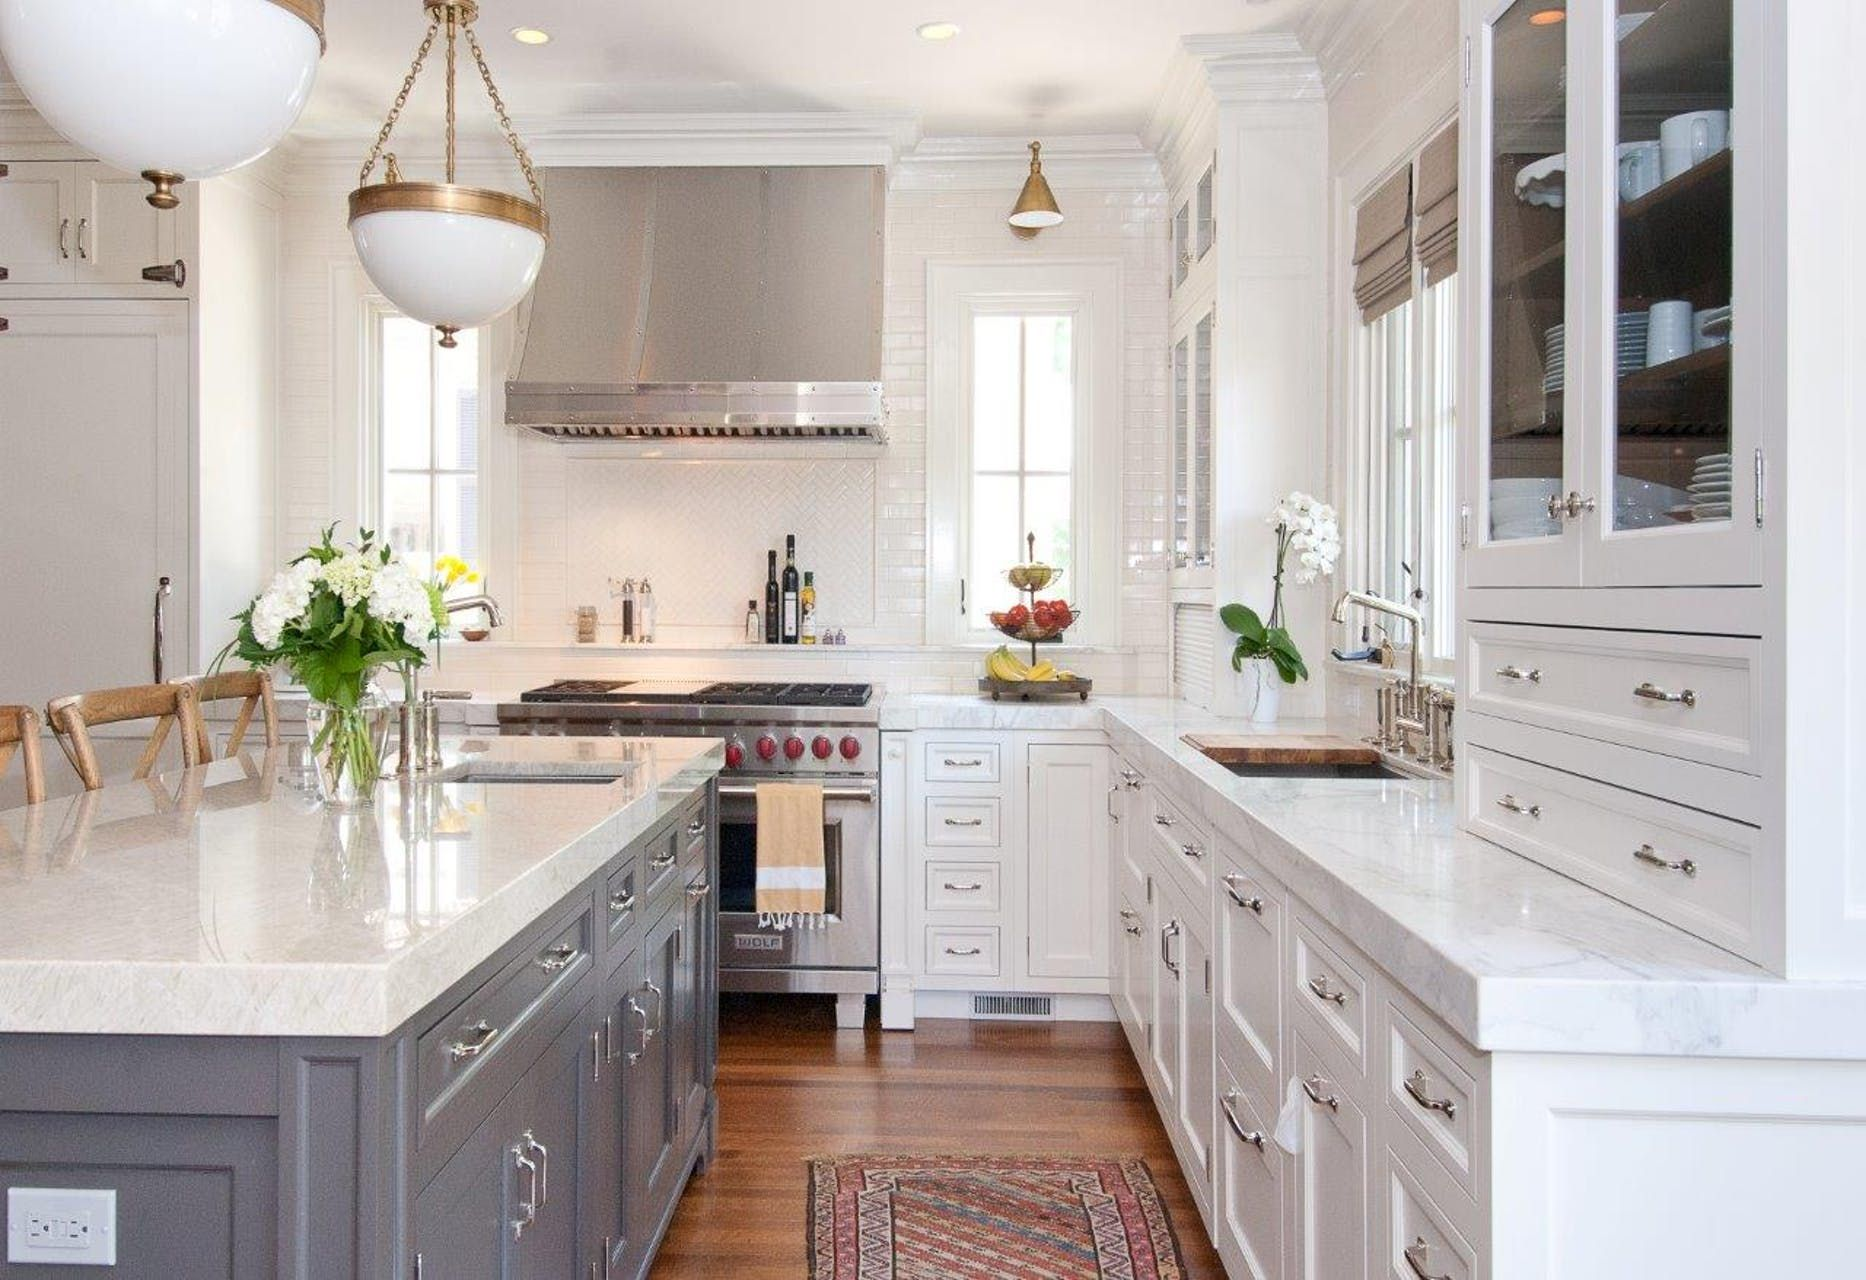 White Cabinets Gray Island Chrome Pulls Faucet Etc But Use Of Brass In Lighting Kitchen Design Kitchen Renovation Kitchen Remodel